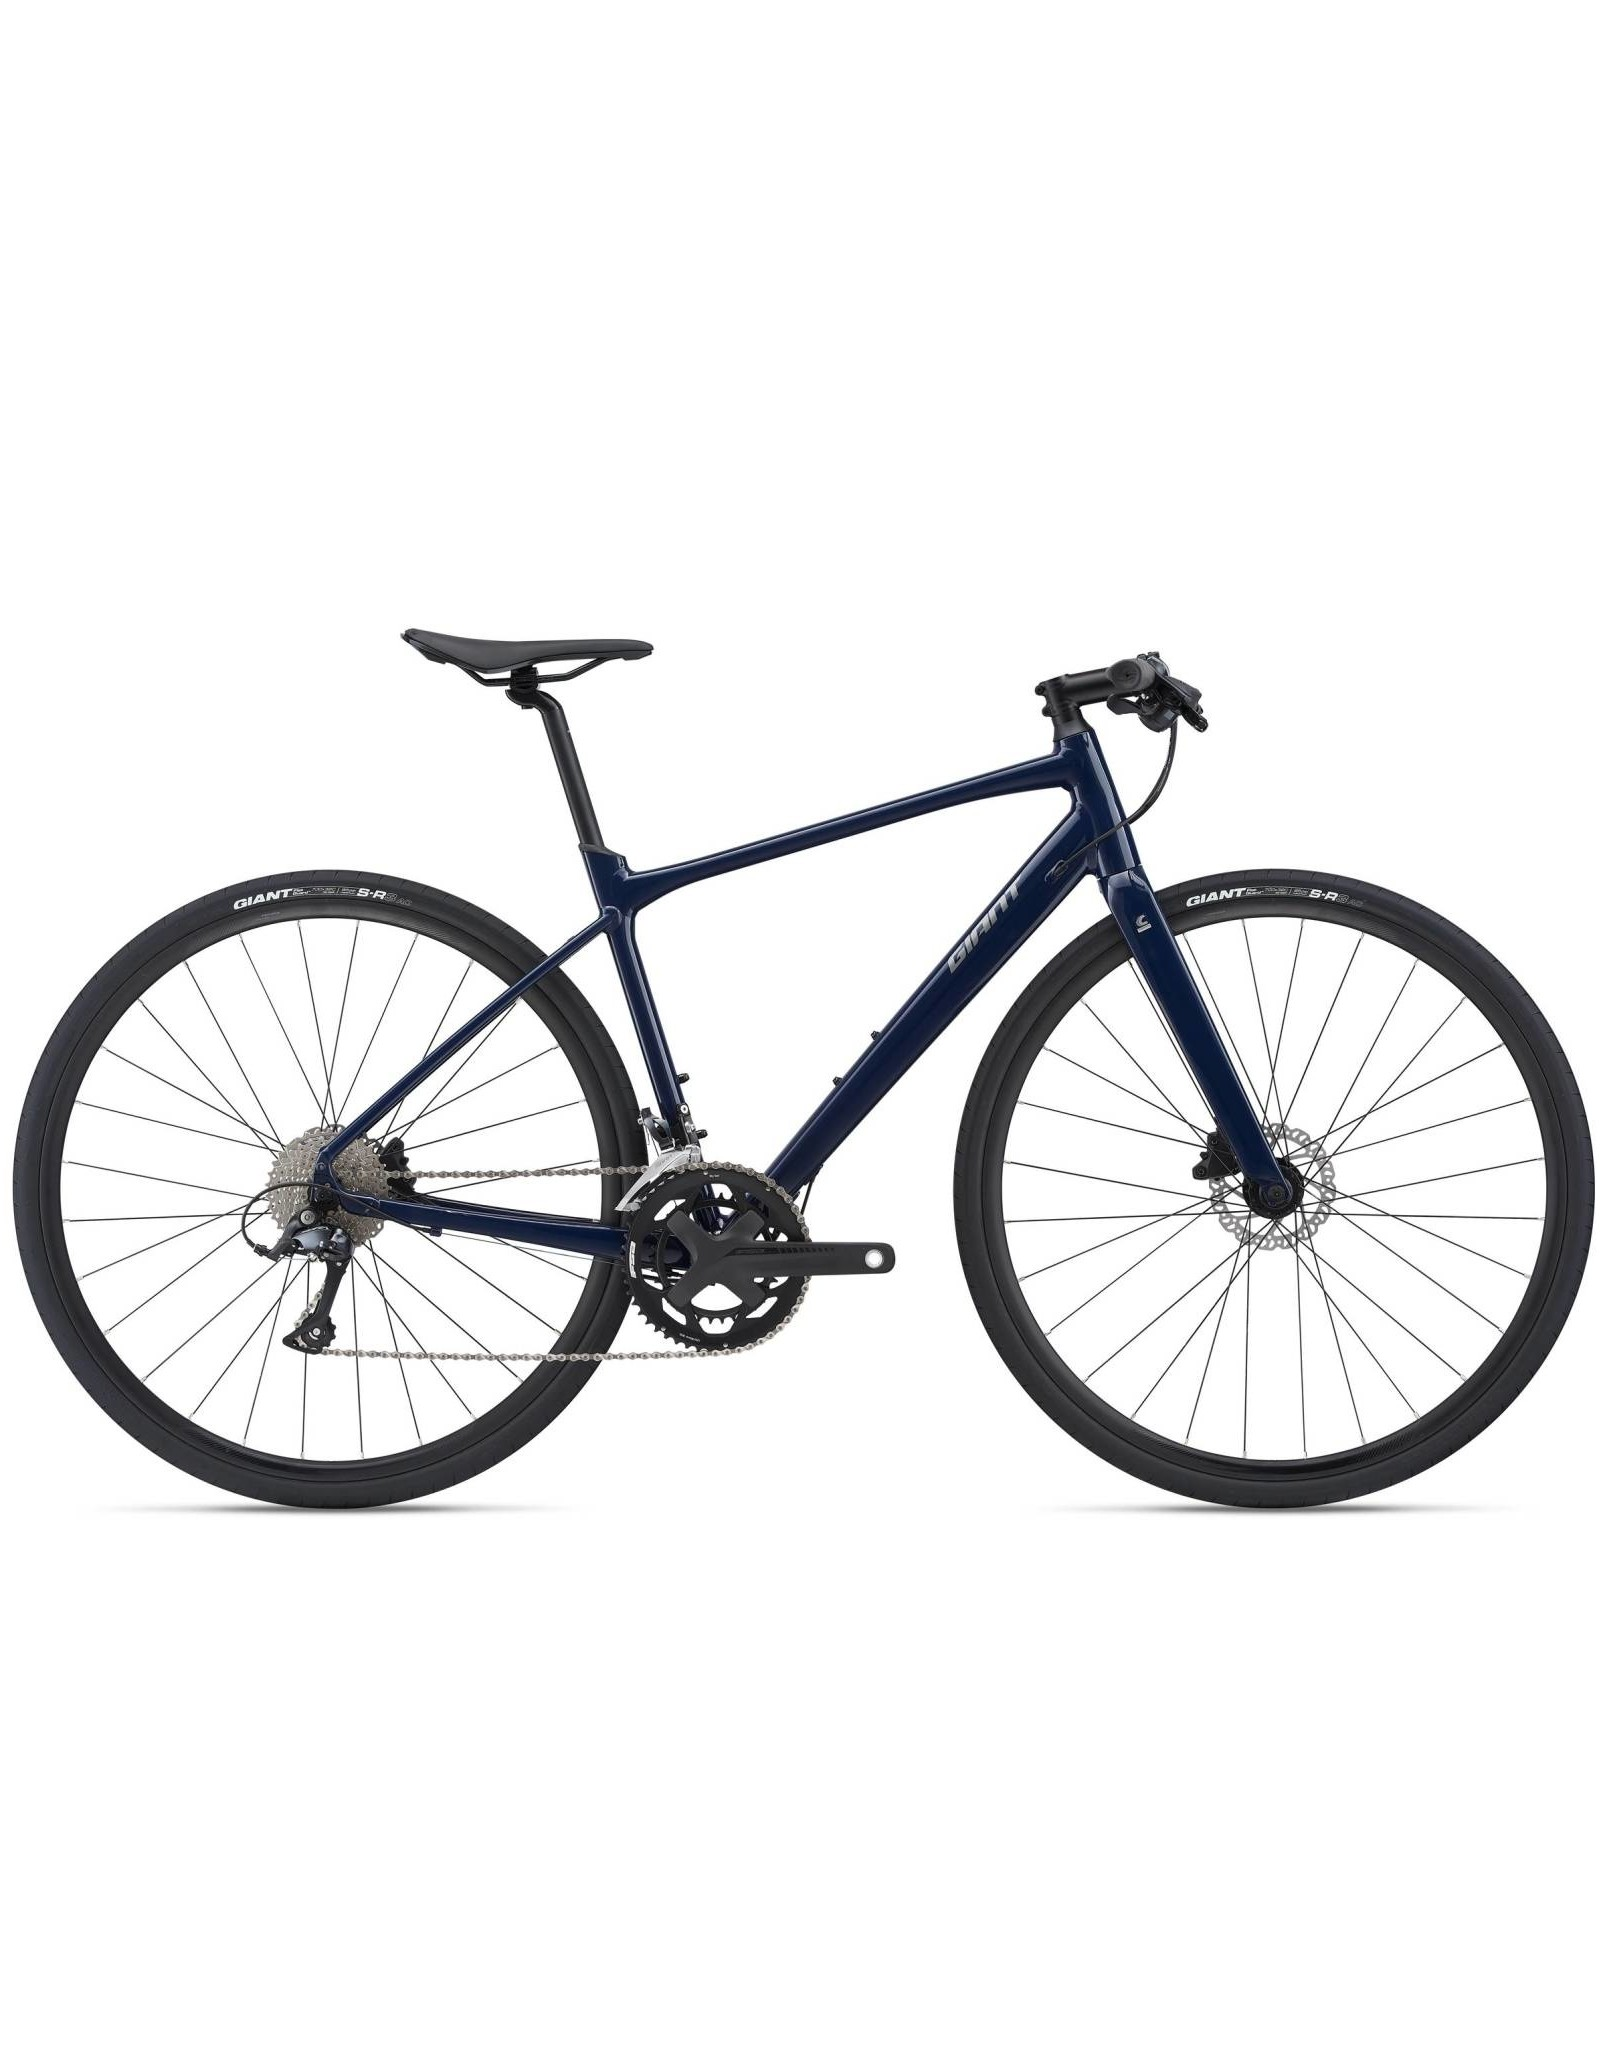 GIANT Giant FastRoad SL 2 2021 Eclipse